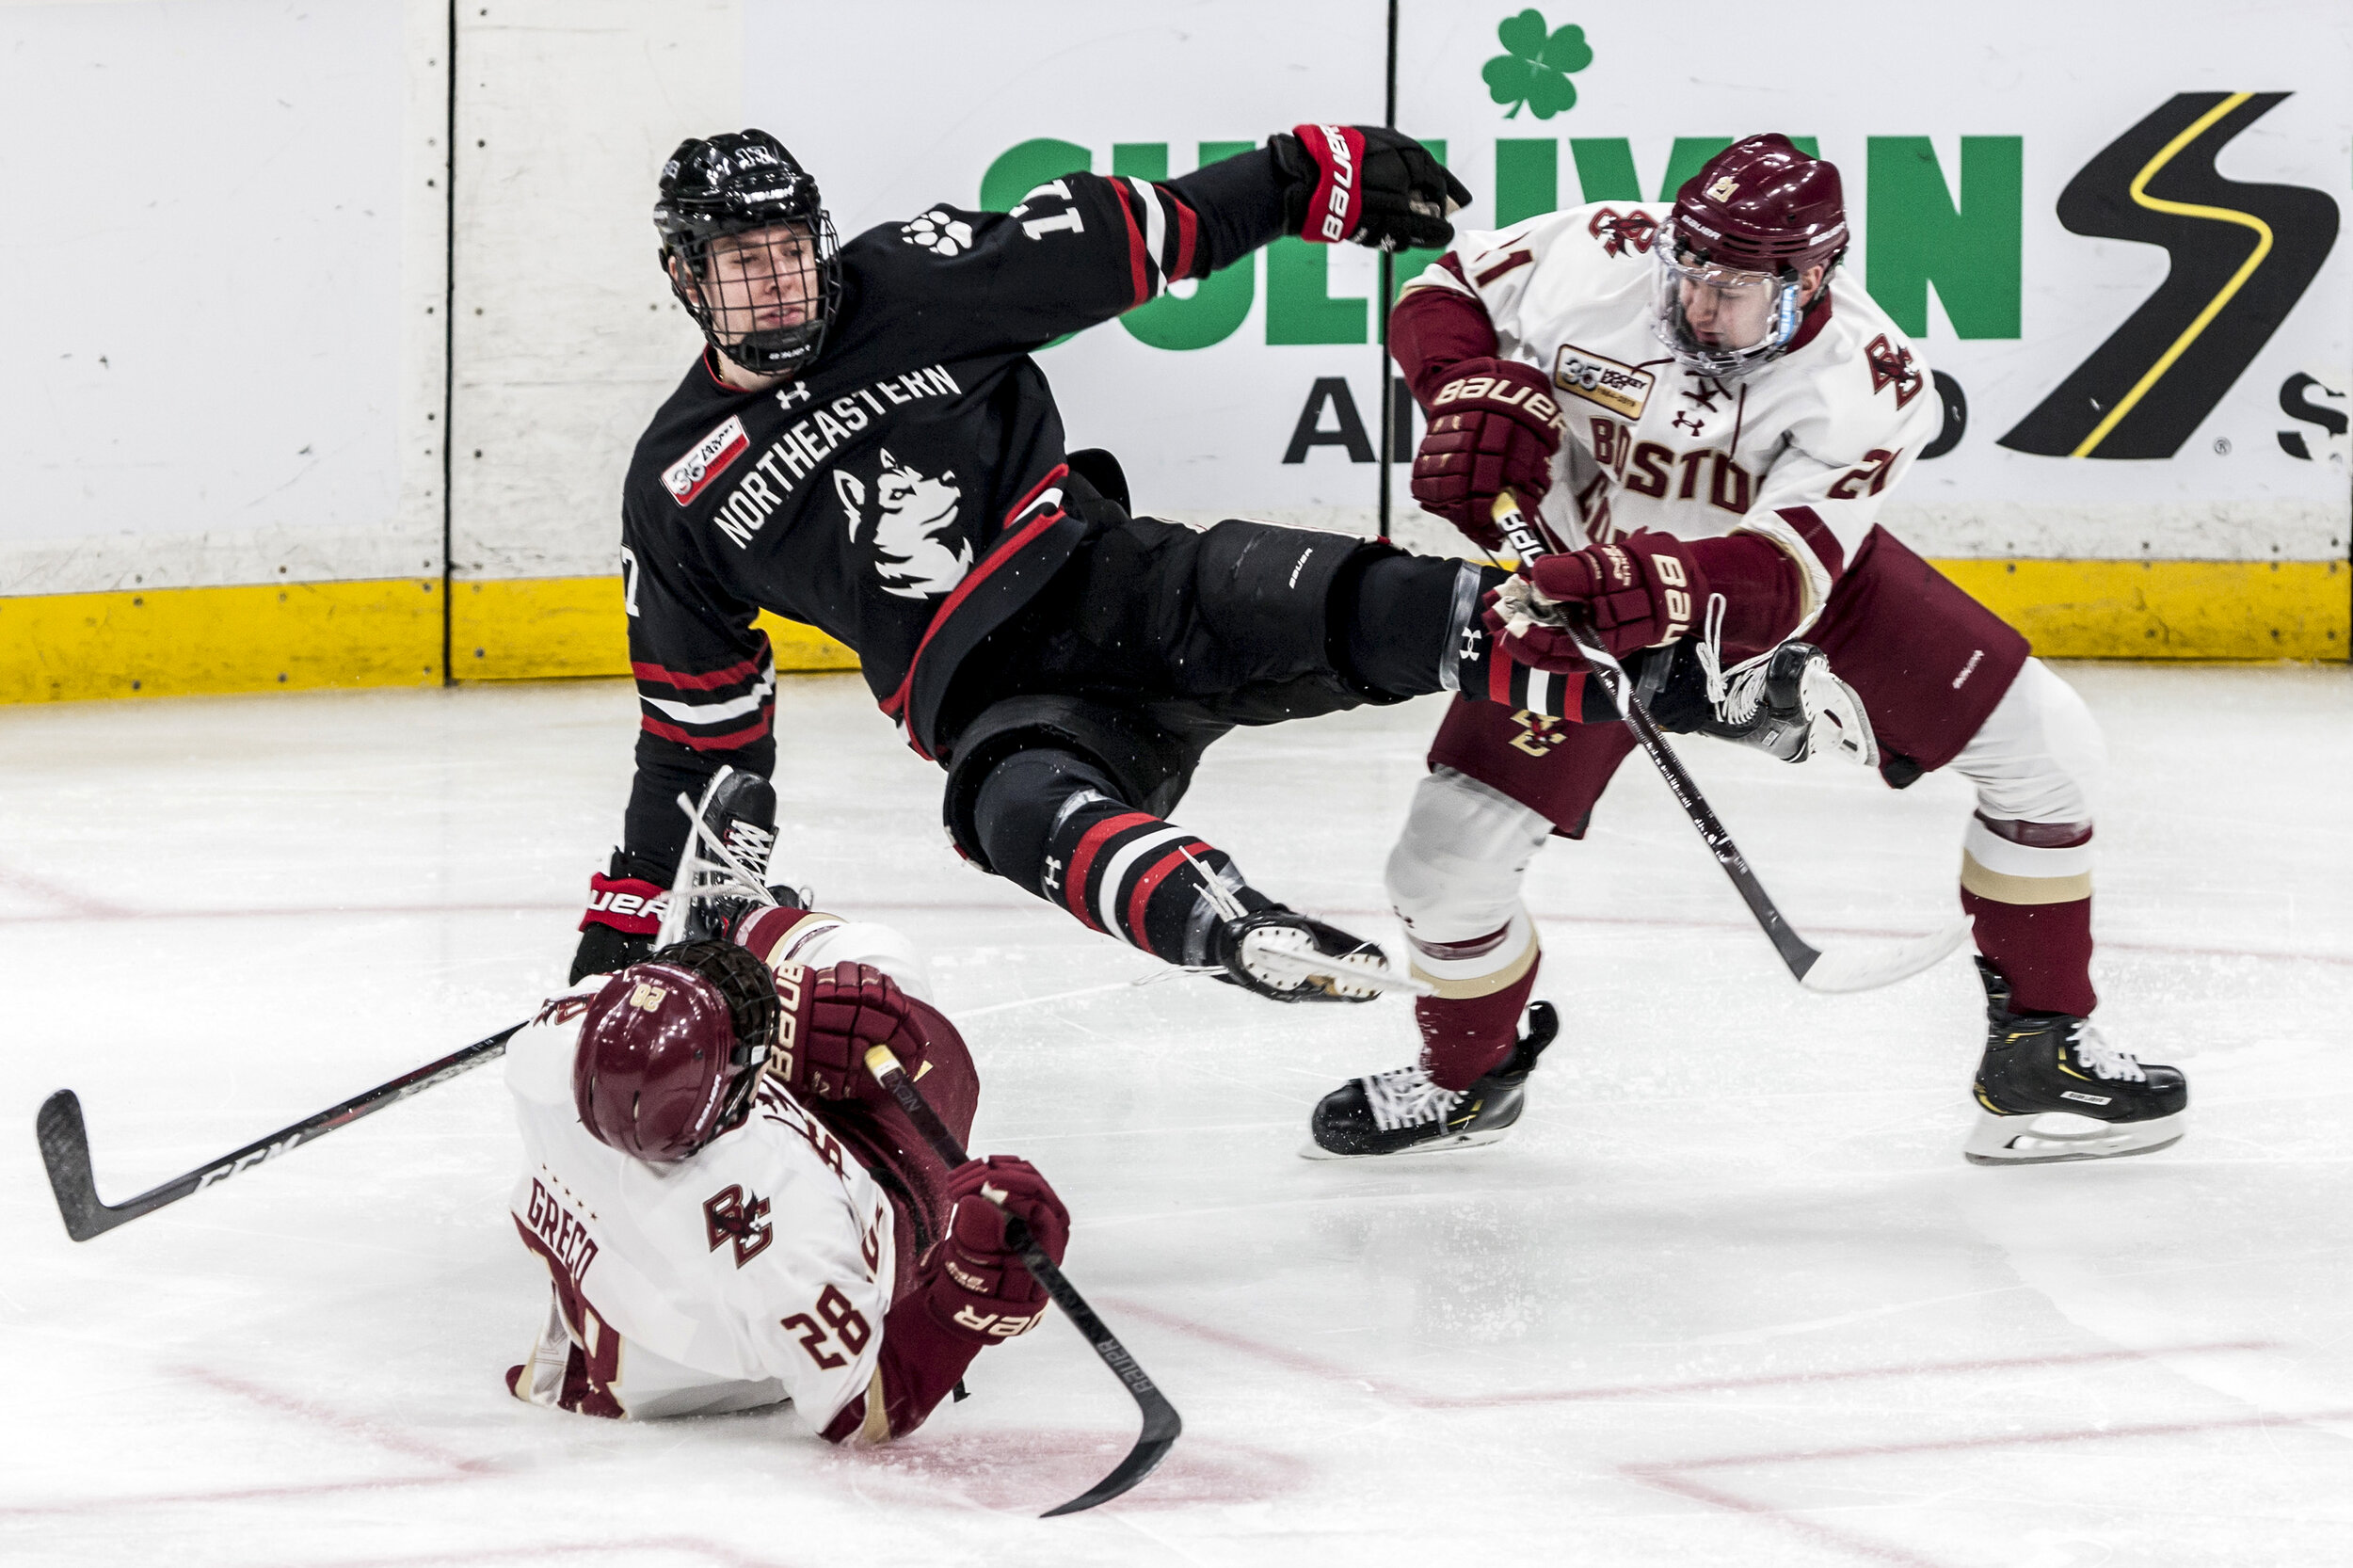 Austin Goldstein, of Northeastern University Men's Hockey, is caught mid-air between two Boston College defenders during the 2019 Beanpot Final at TD Garden in Boston, MA.